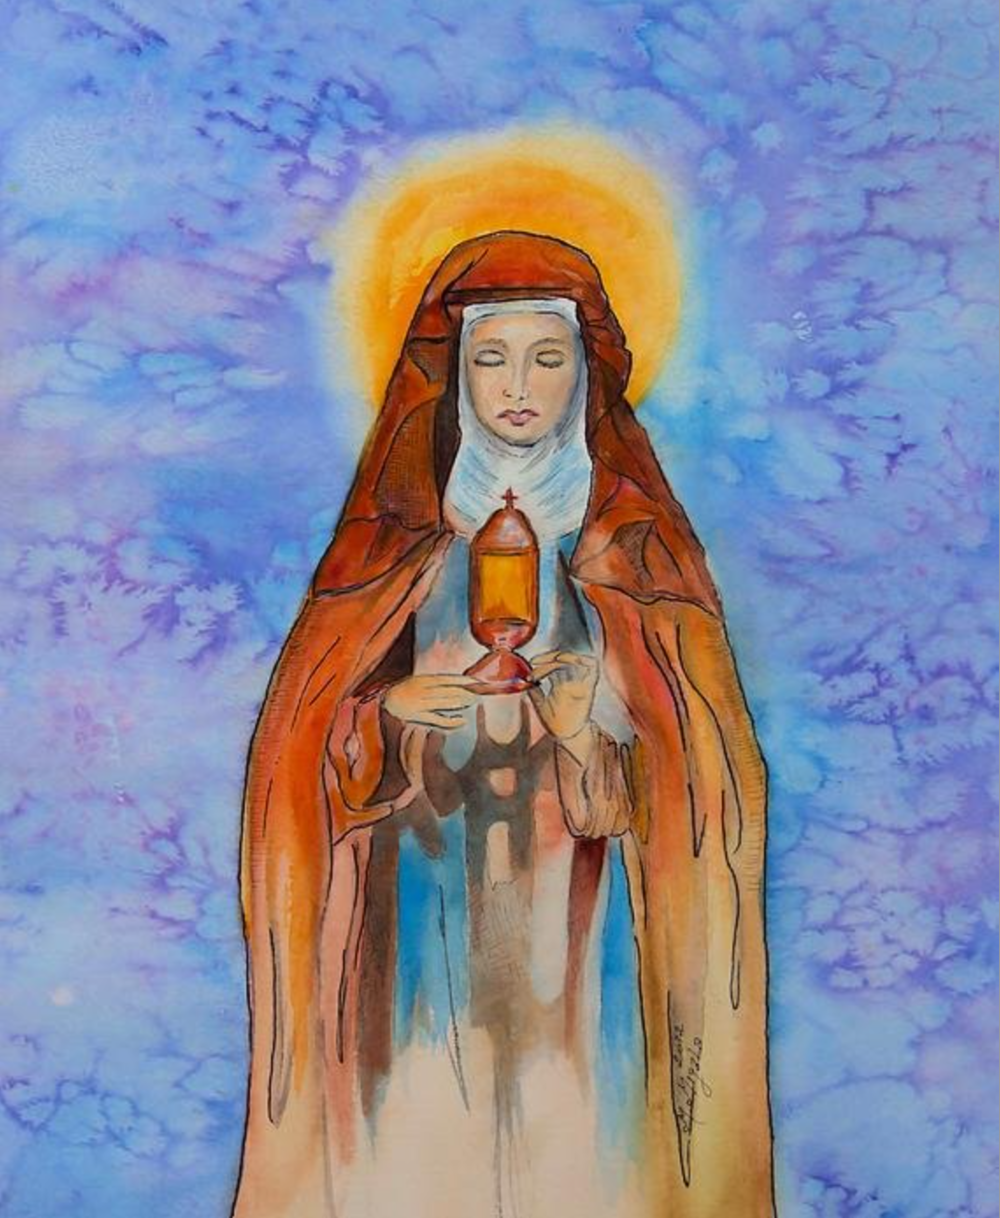 St. Clare of Assisi by: Myrna Migala